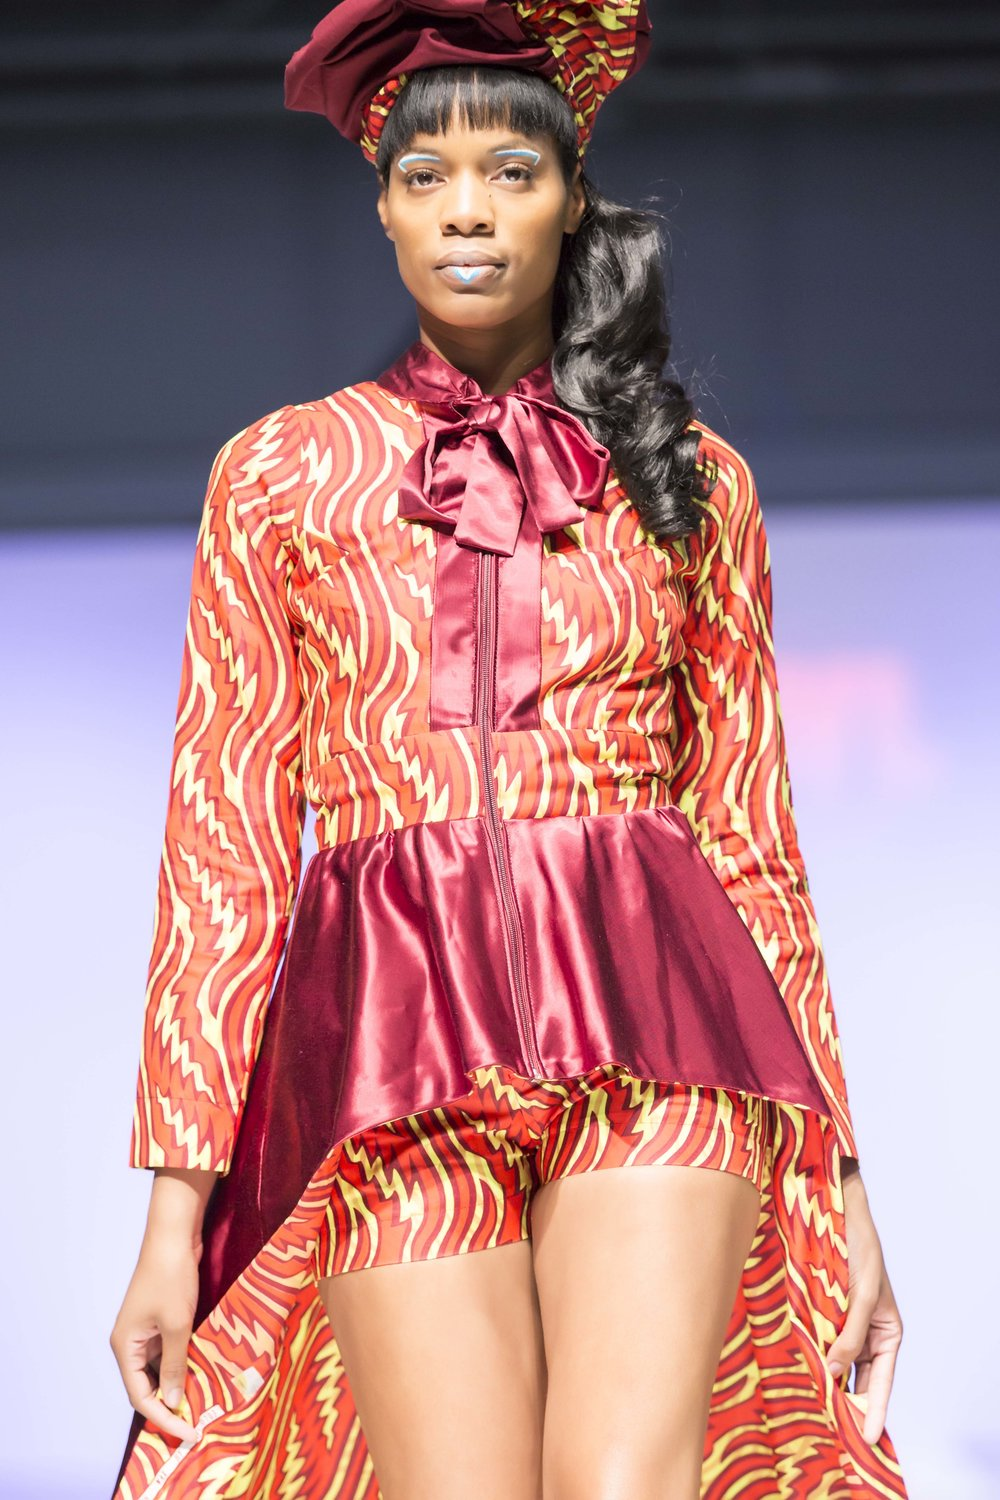 African Fashion Today-Joanna Mitroi Photography 0850 - lores.jpg